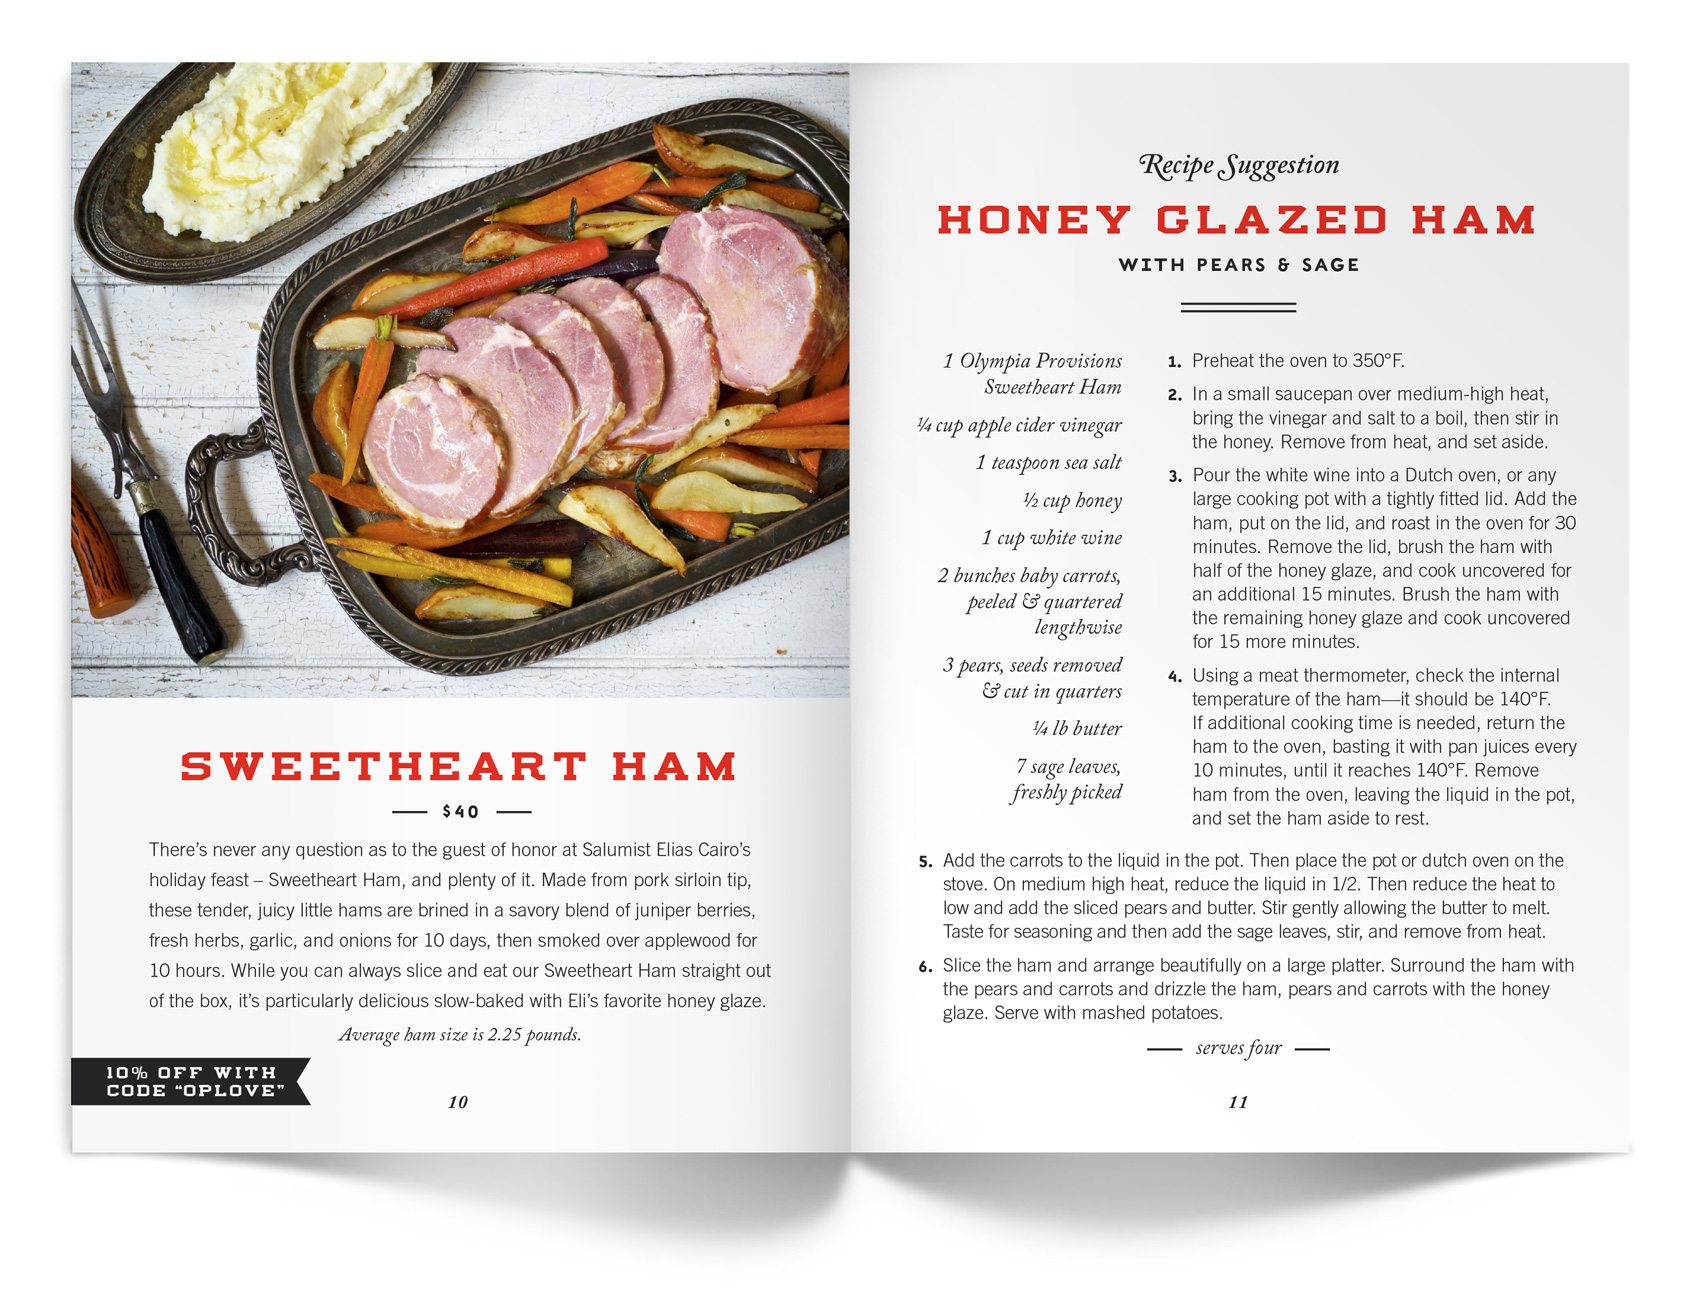 Eli Cairo's honey glazed ham recipe.